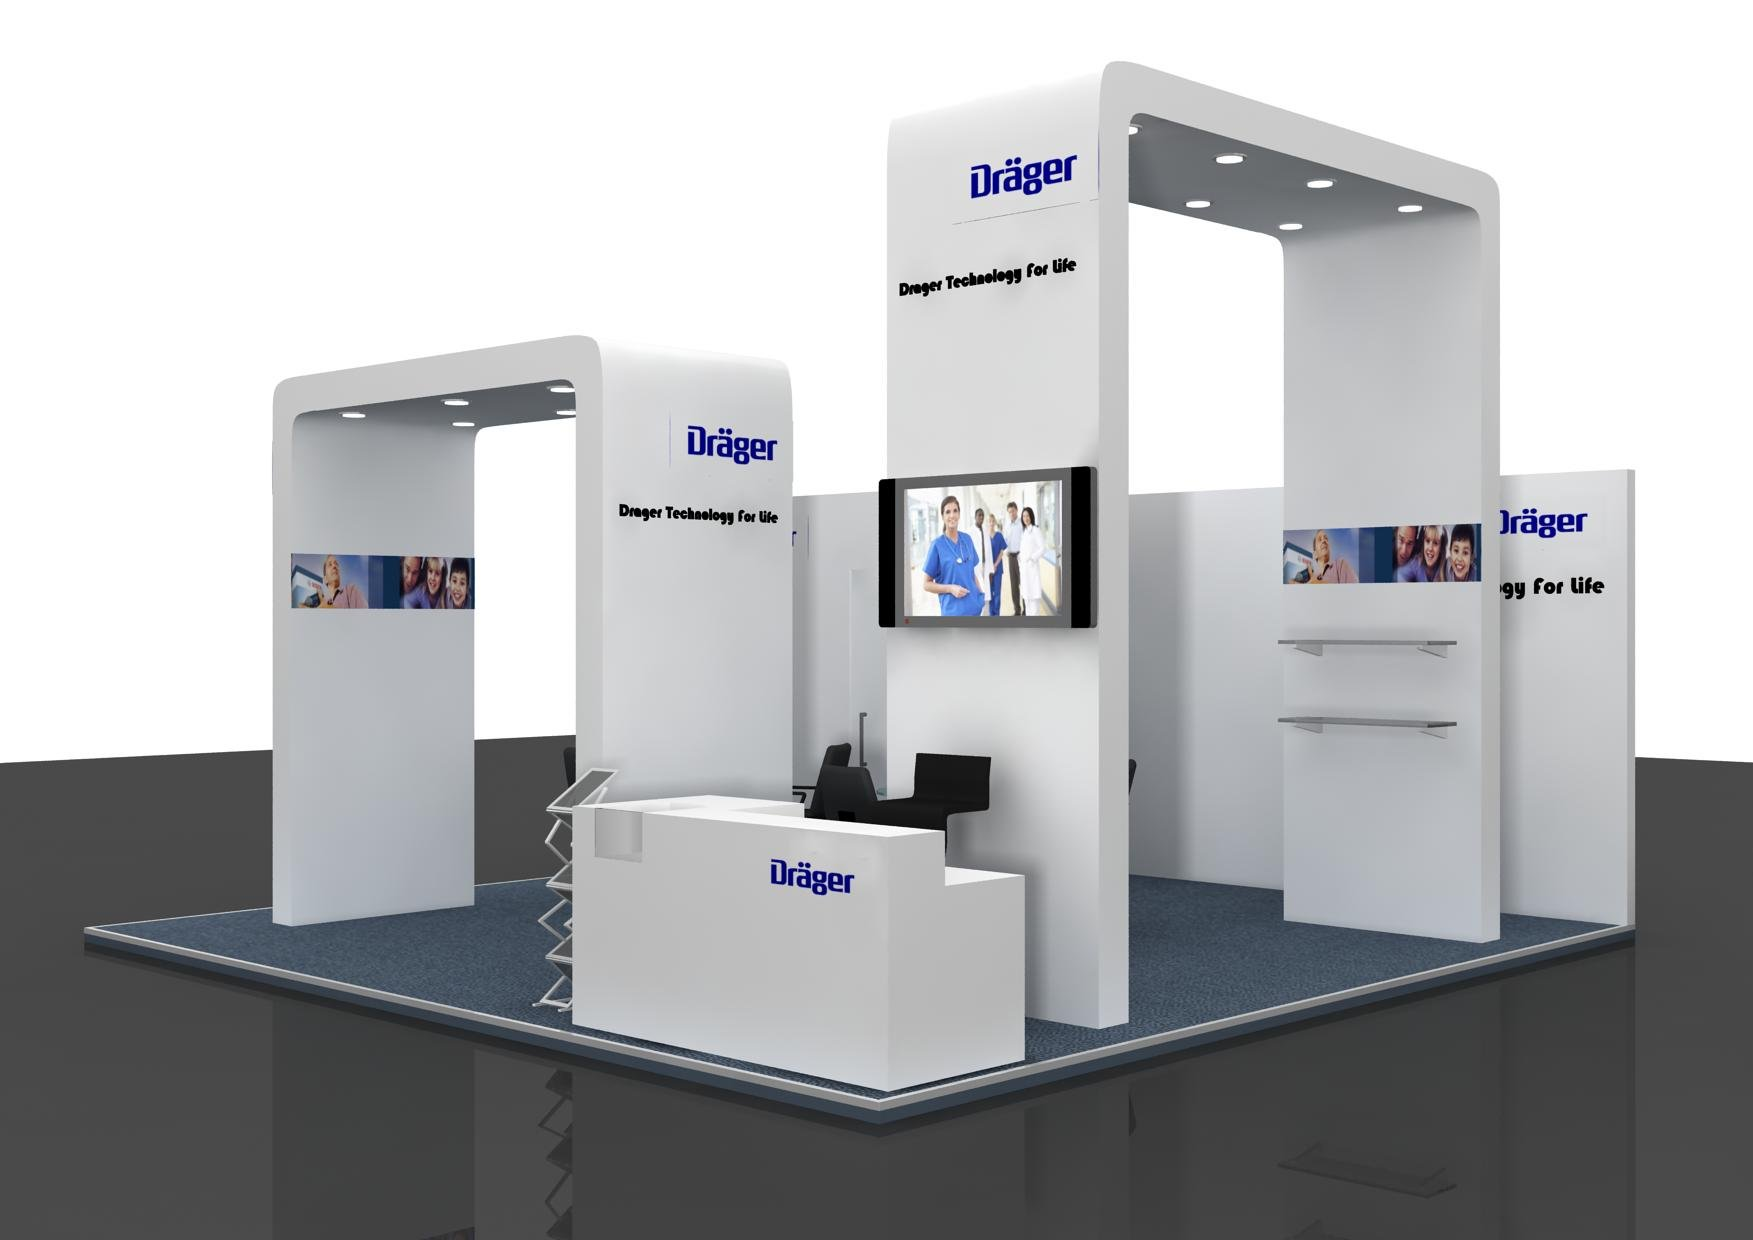 Exhibition Stall Image : Exhibition stalls stall interior booth design